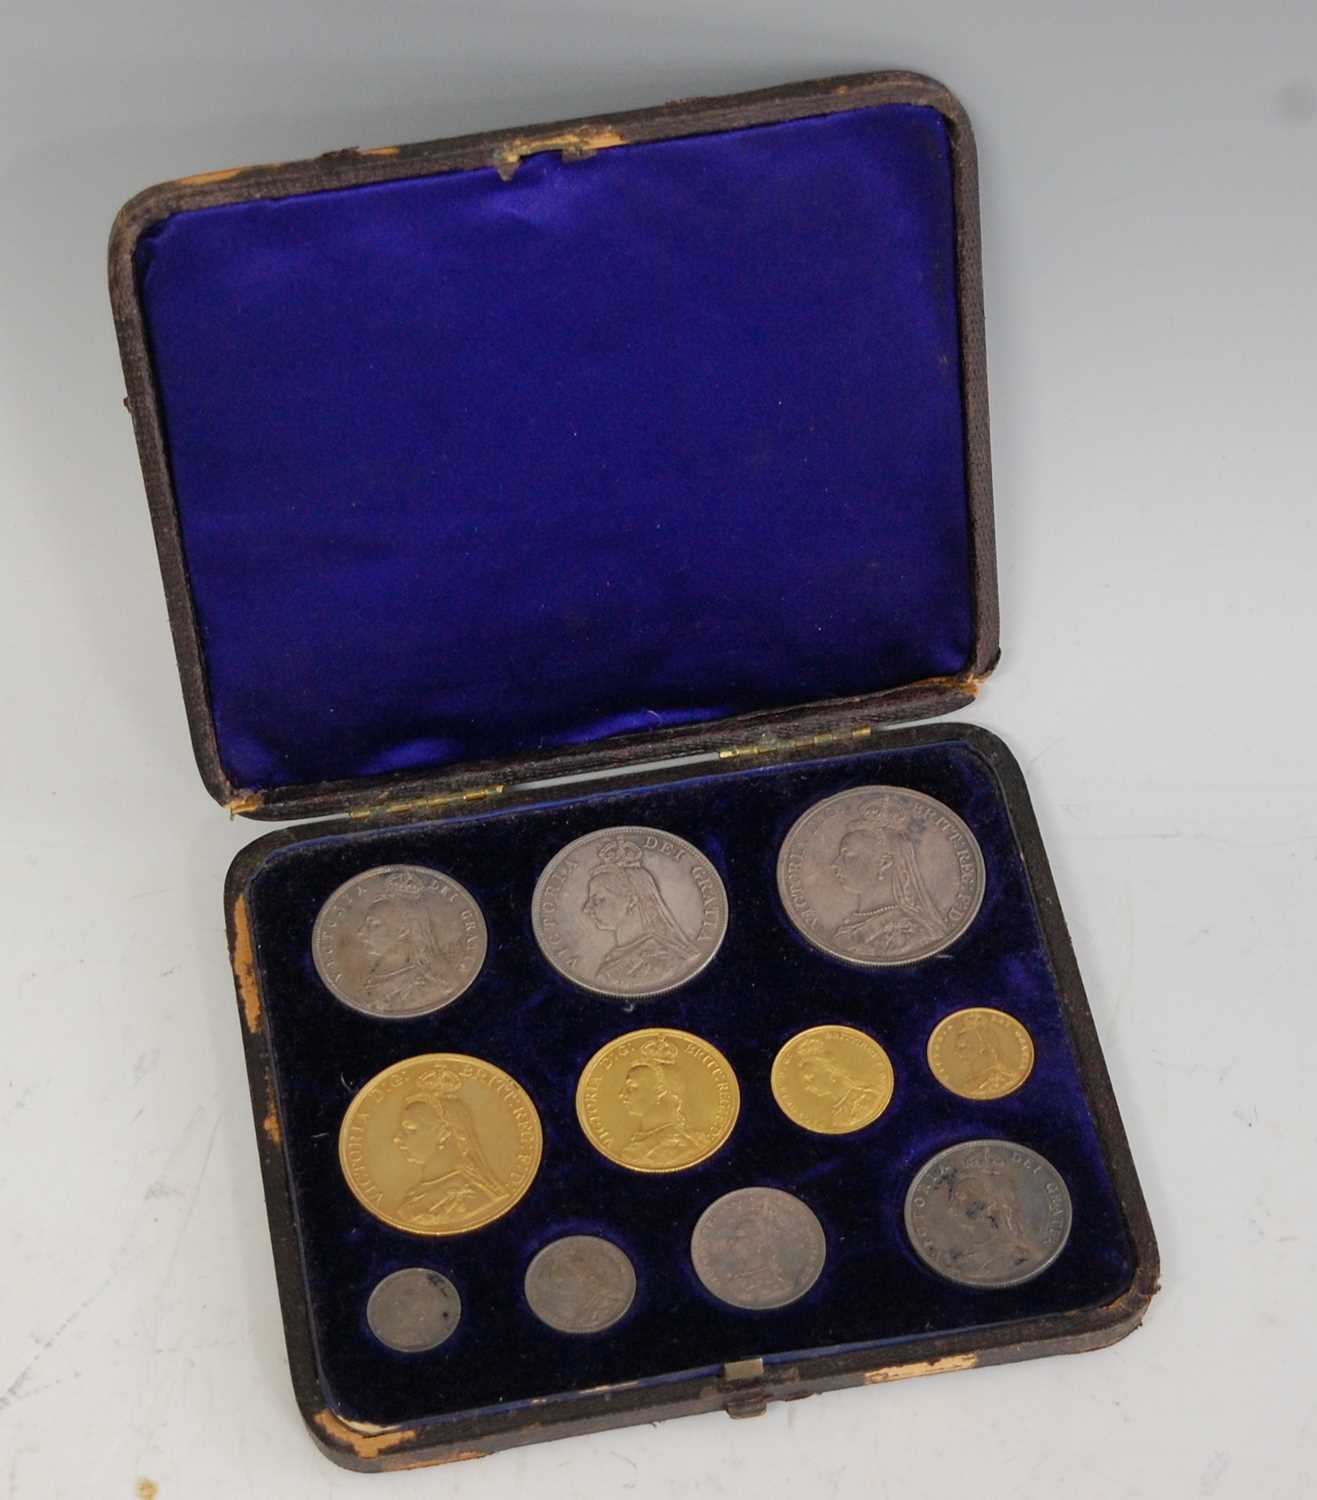 522 - Great Britain, 1887 eleven coin specimen coin set